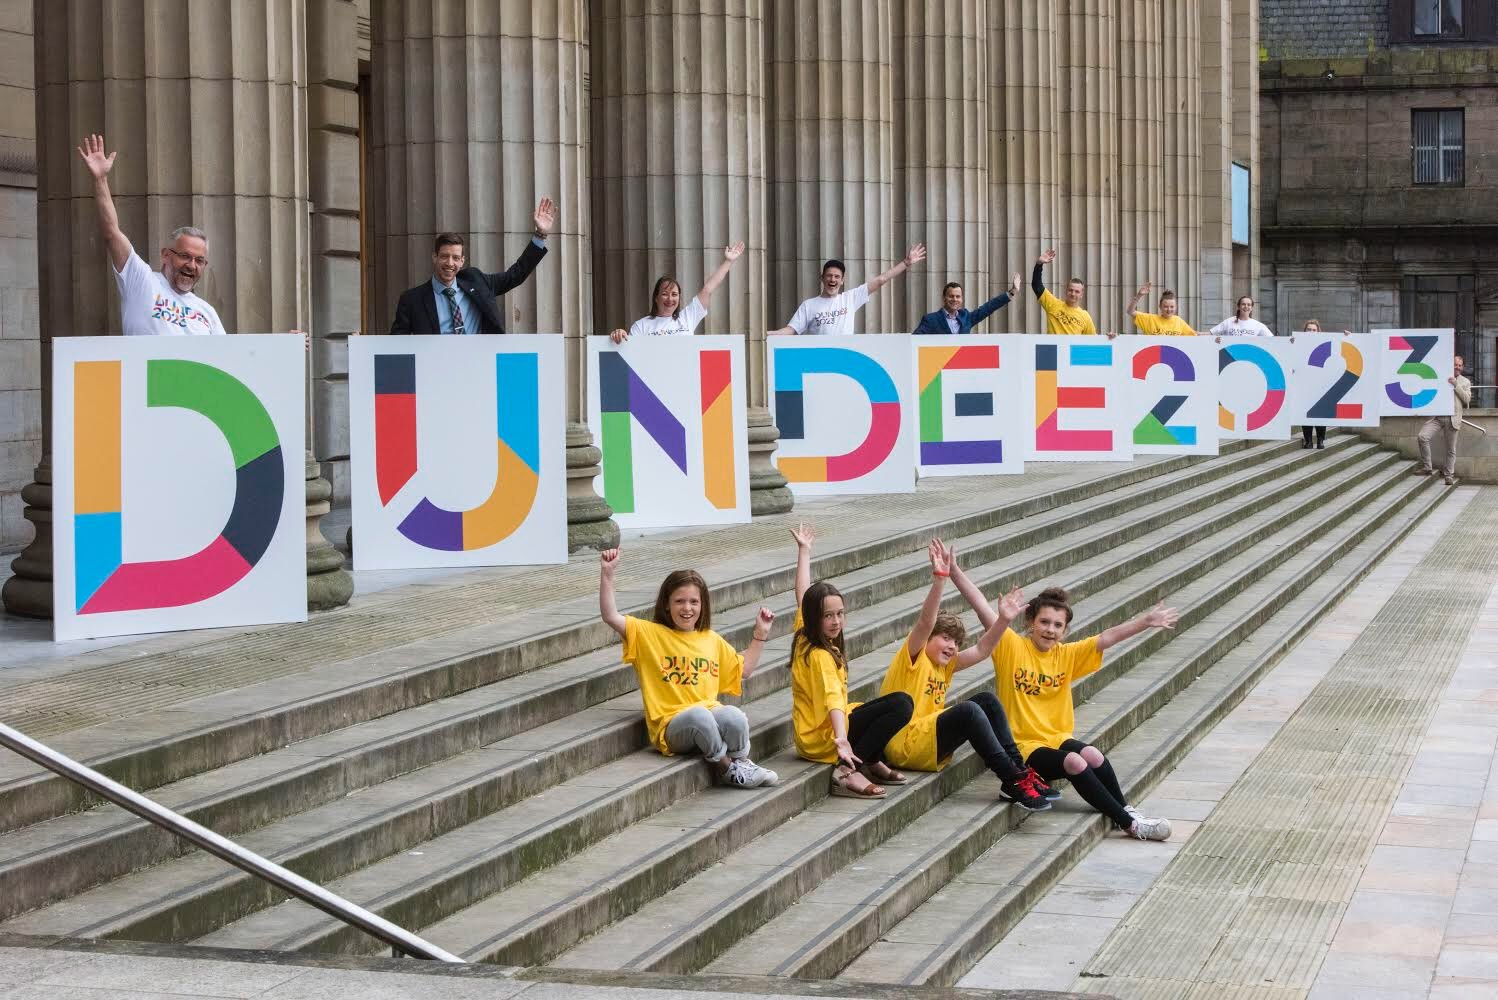 Today Dundee launches its #dundee2023 bid - to celebrate we'll be sharing just a few of the ways we're linked with our friends in Europe https://t.co/6cYJxE3Ud9